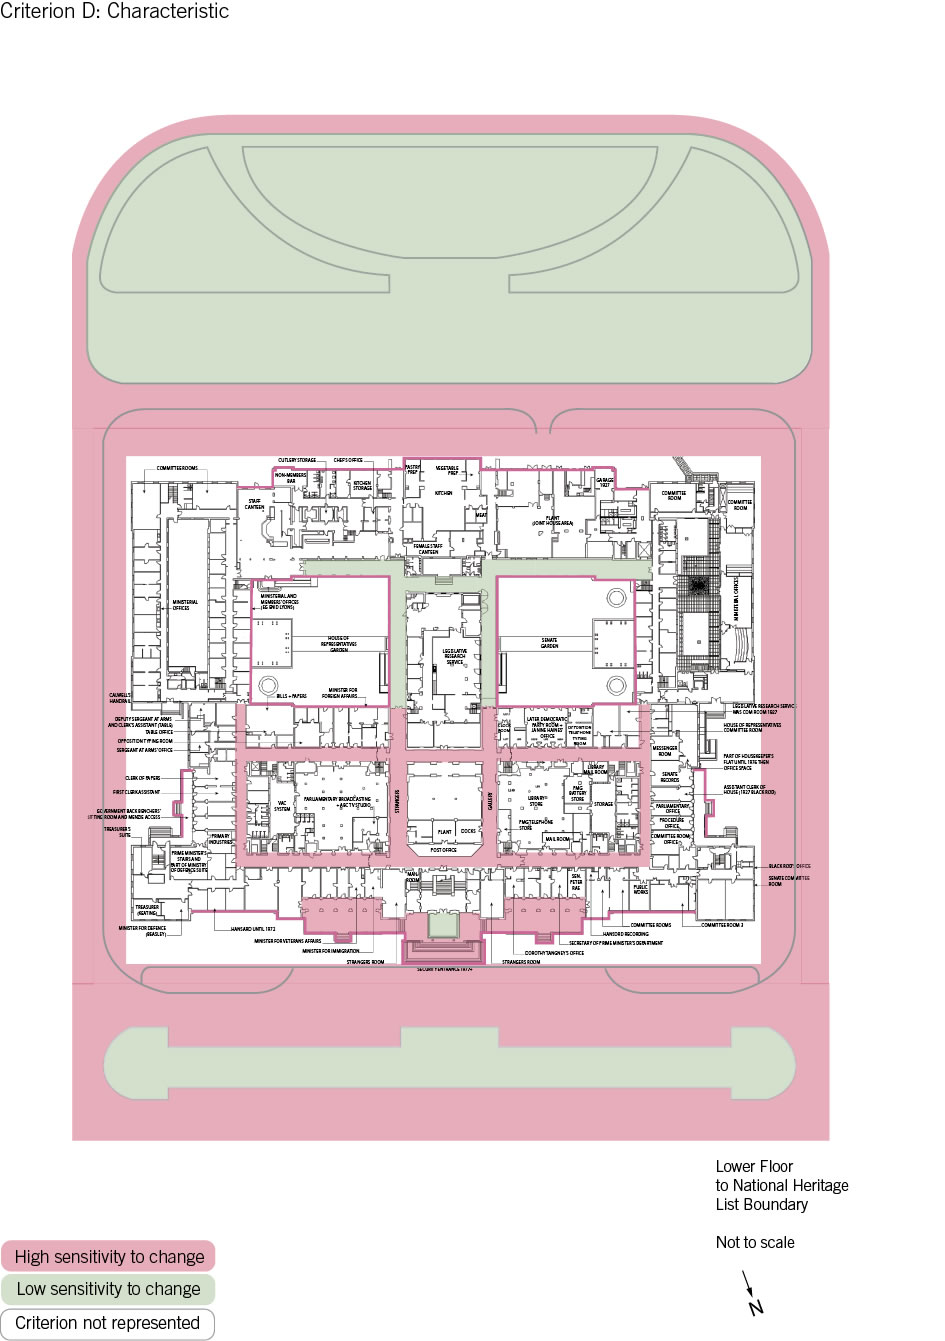 Old Parliament House lower floor plan showing the zones according to criterion D: characteristic.